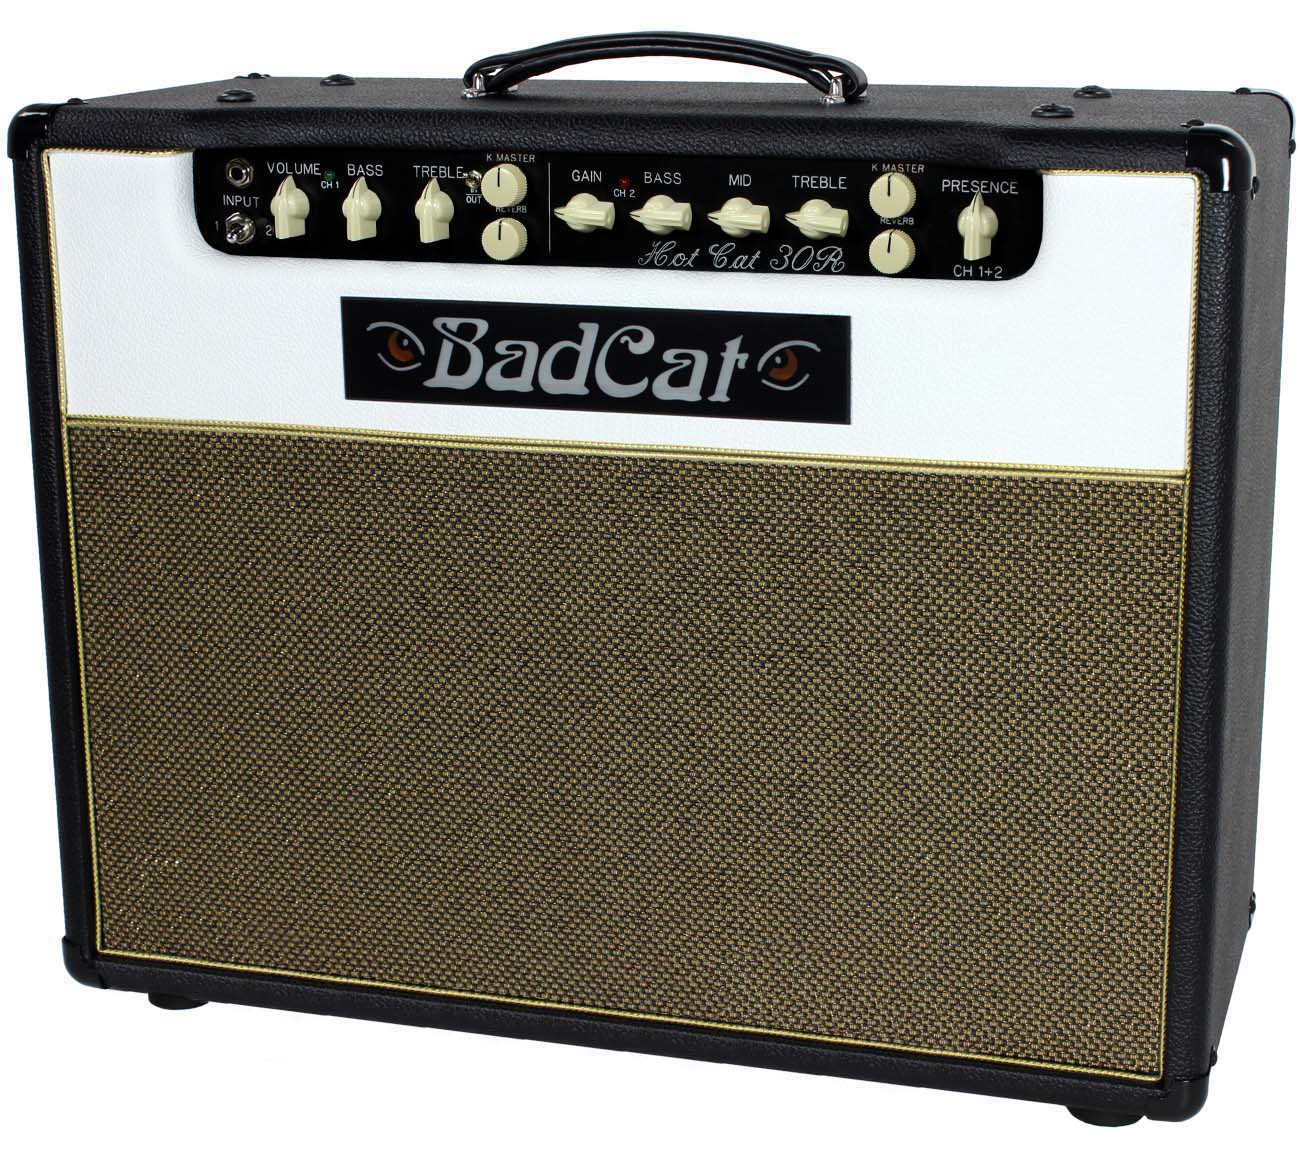 bad cat hot cat 30r reverb handwired 1x12 combo amp black white humbucker music. Black Bedroom Furniture Sets. Home Design Ideas